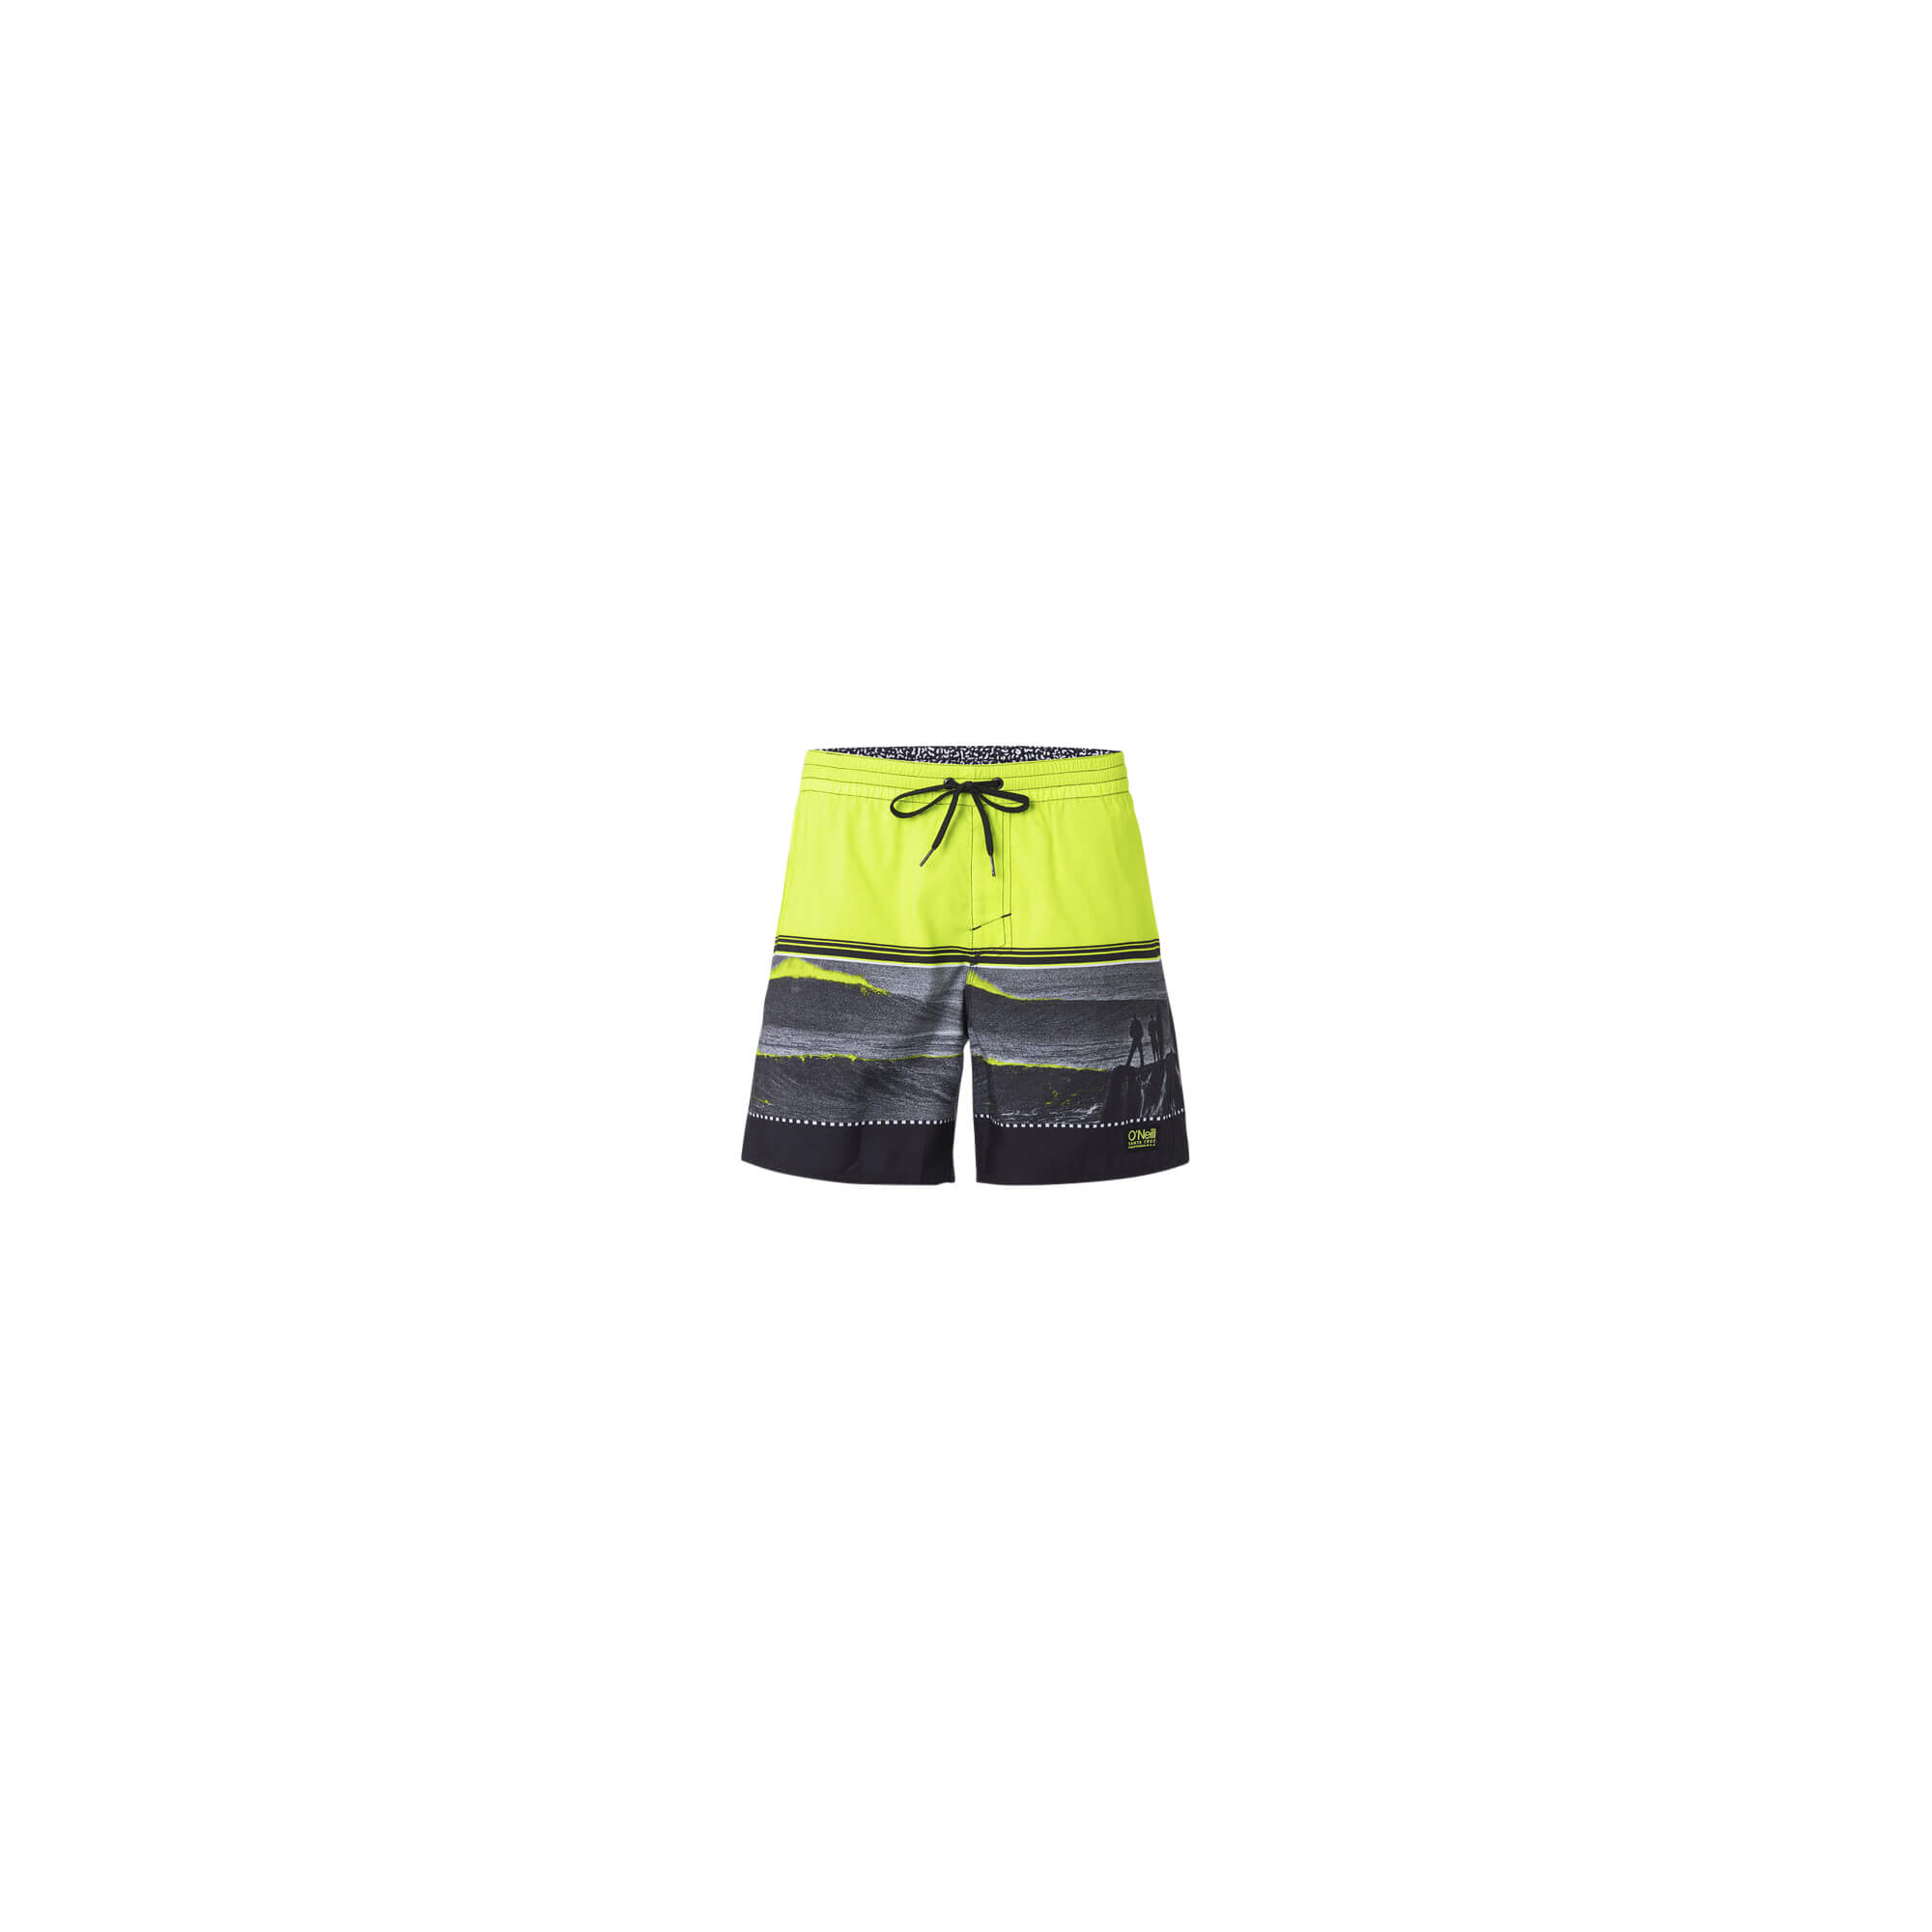 Point Swim Shorts imagine produs